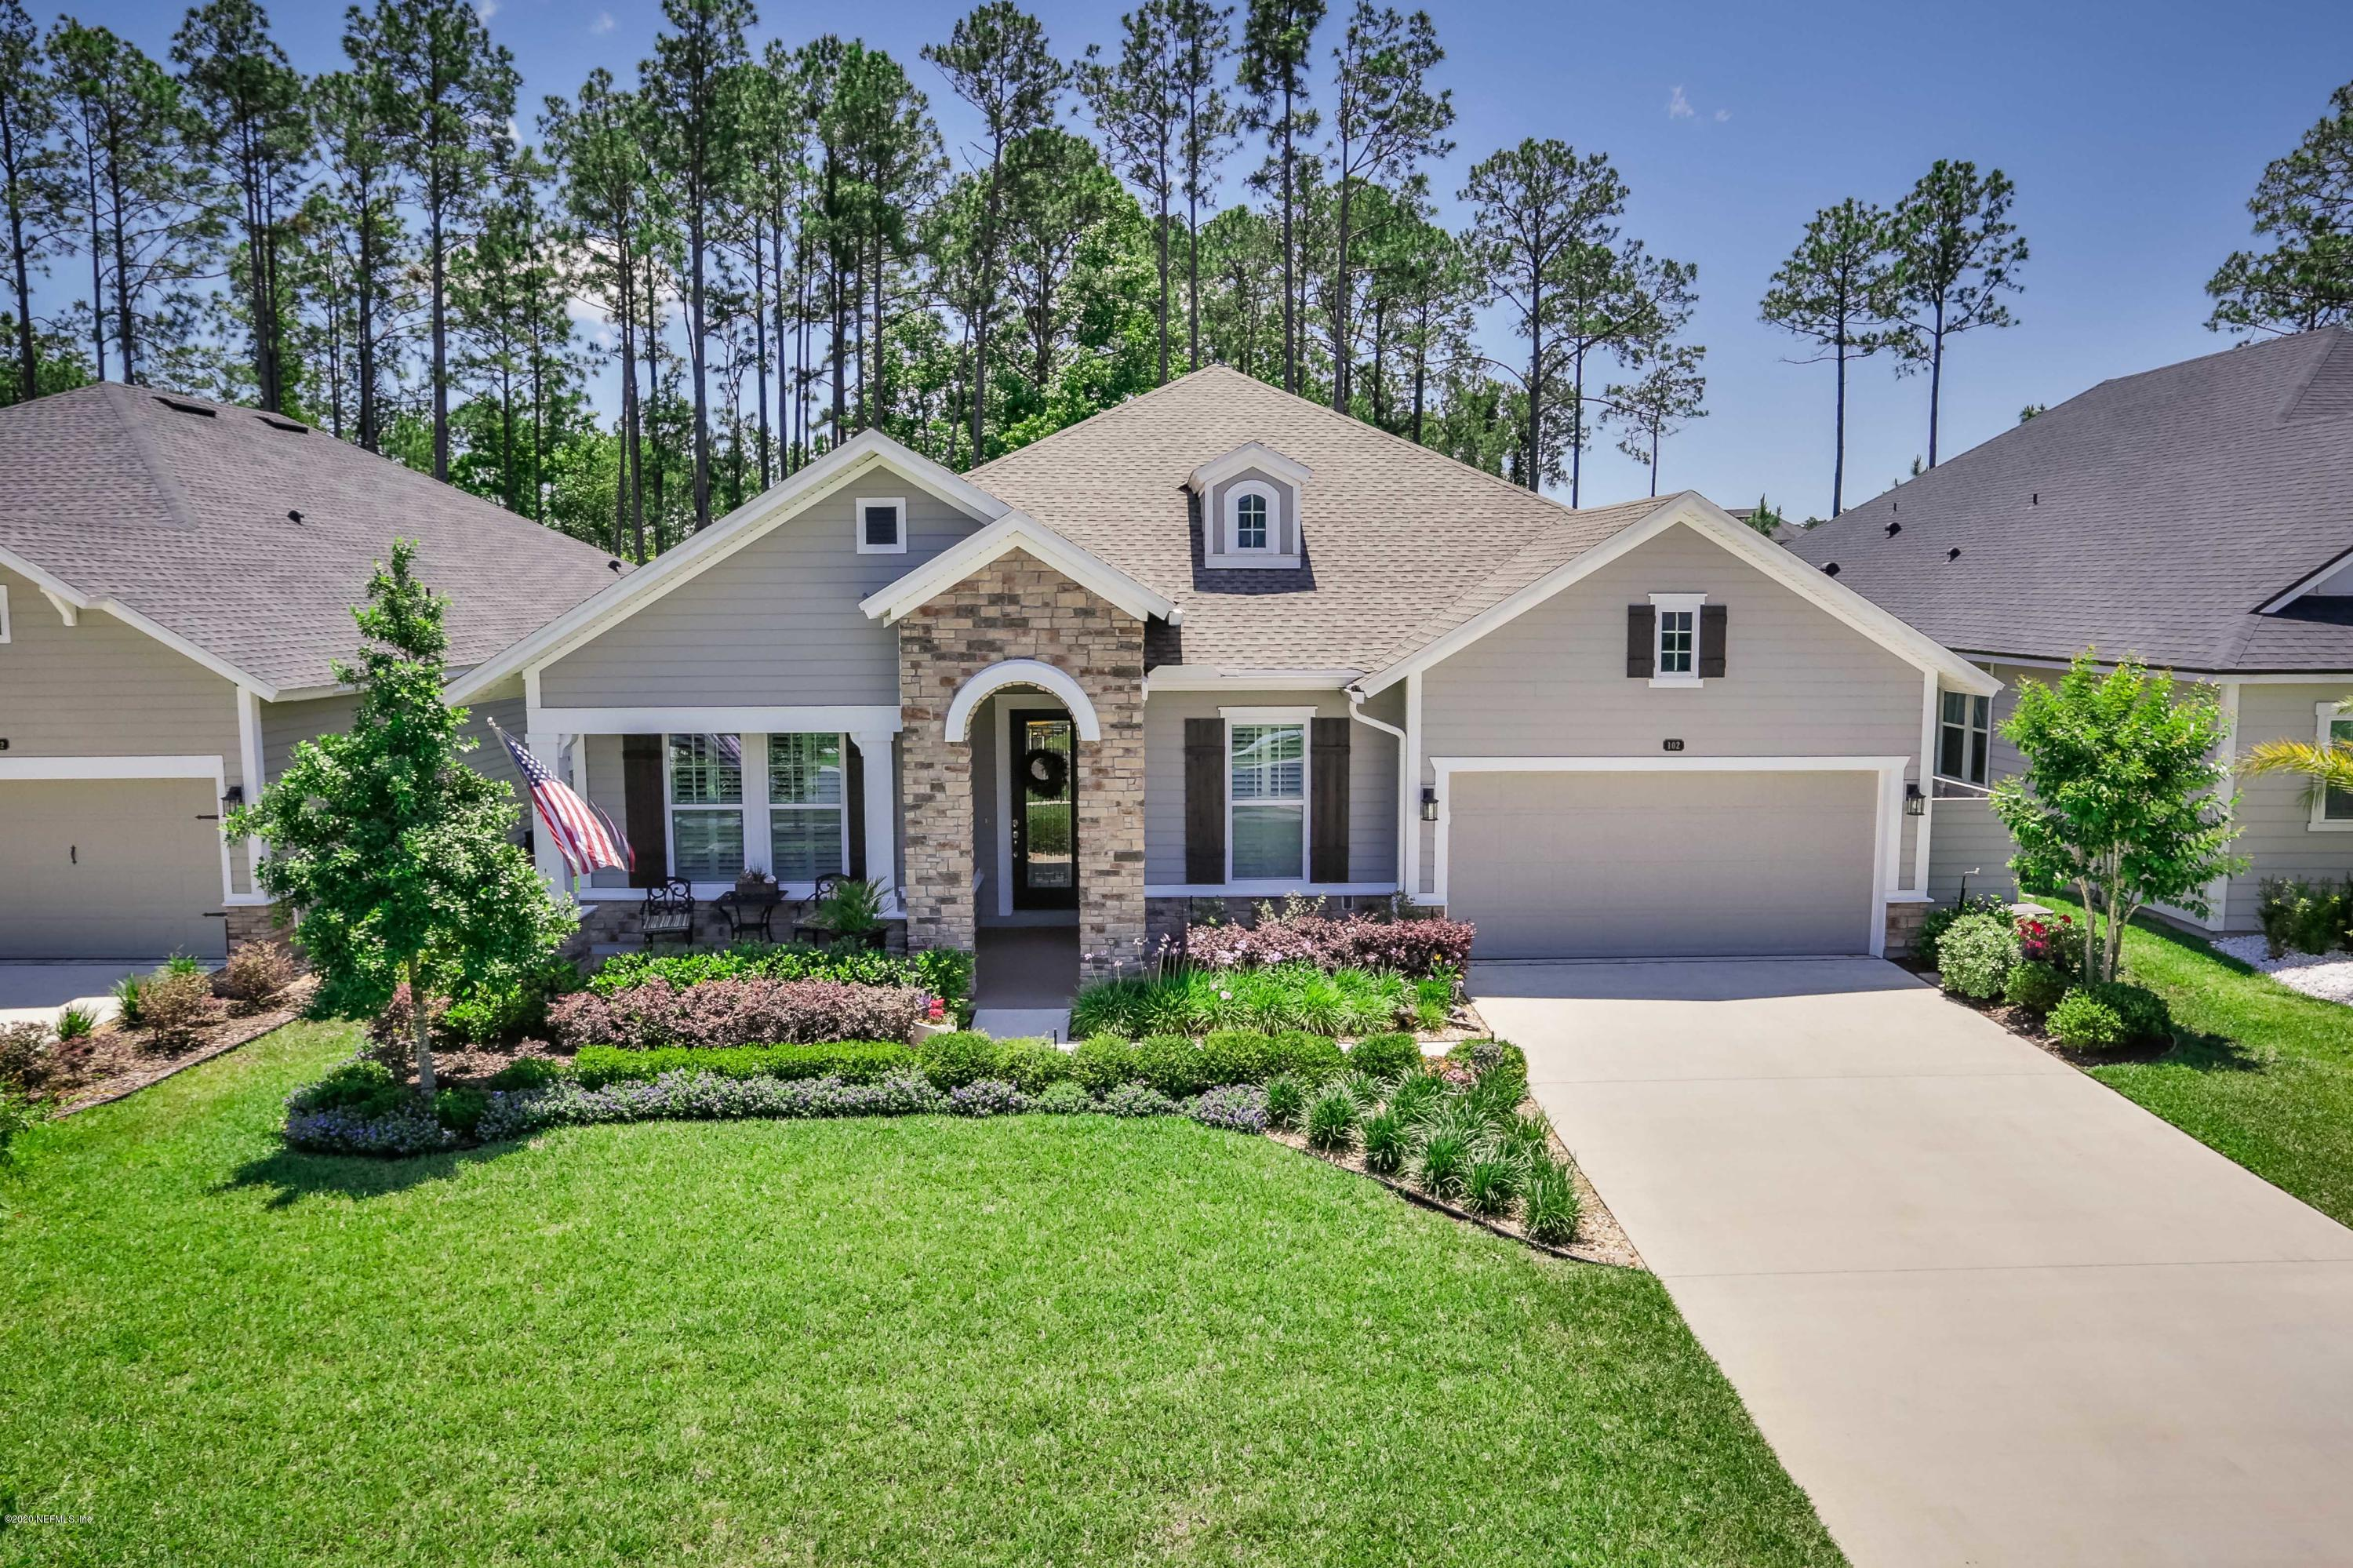 102 LAZY CREST, PONTE VEDRA, FLORIDA 32081, 3 Bedrooms Bedrooms, ,3 BathroomsBathrooms,Residential,For sale,LAZY CREST,1054662